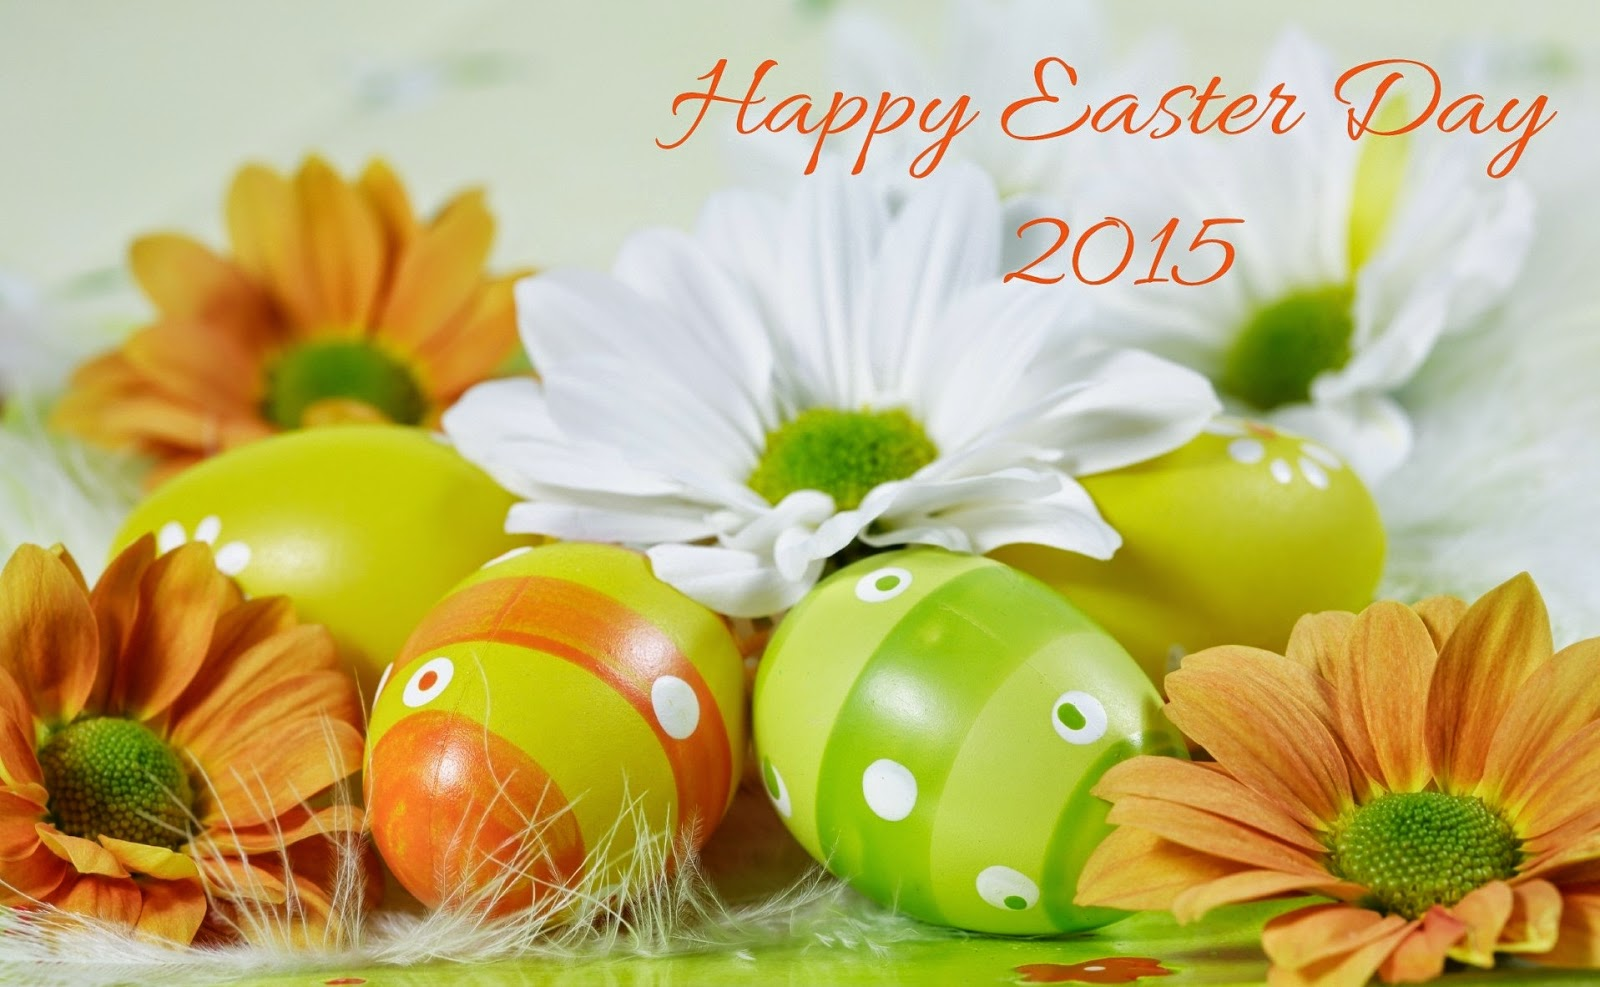 Easter Quotes For Facebook Status: [BEST] Happy Easter Day Facebook Quotes,messages,facebook